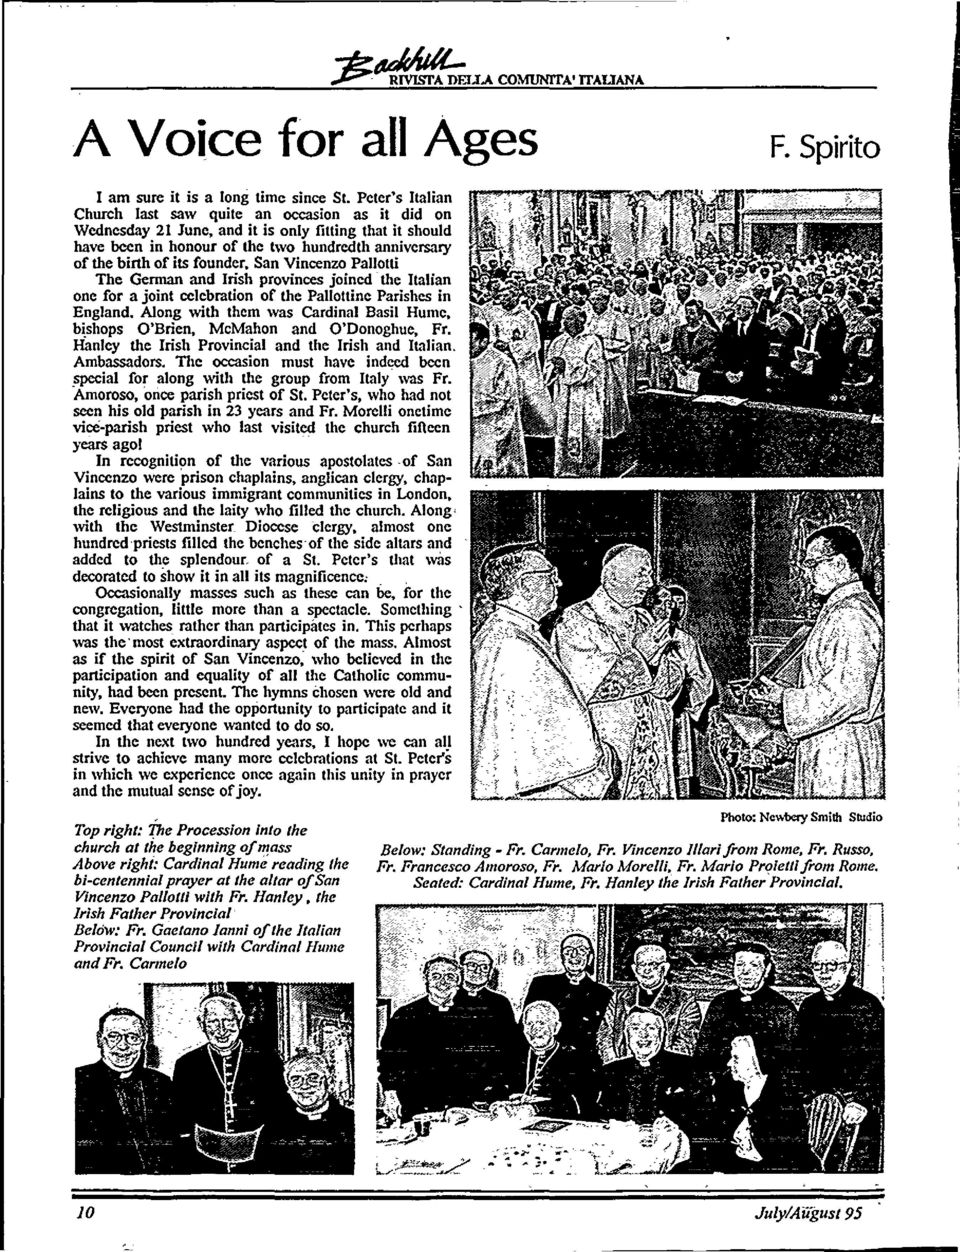 founder. San Vincenzo Pallotti The Gennan and Irish provinces joined'the Italian one for a joint celebration of the Pallottine Parishes in England.